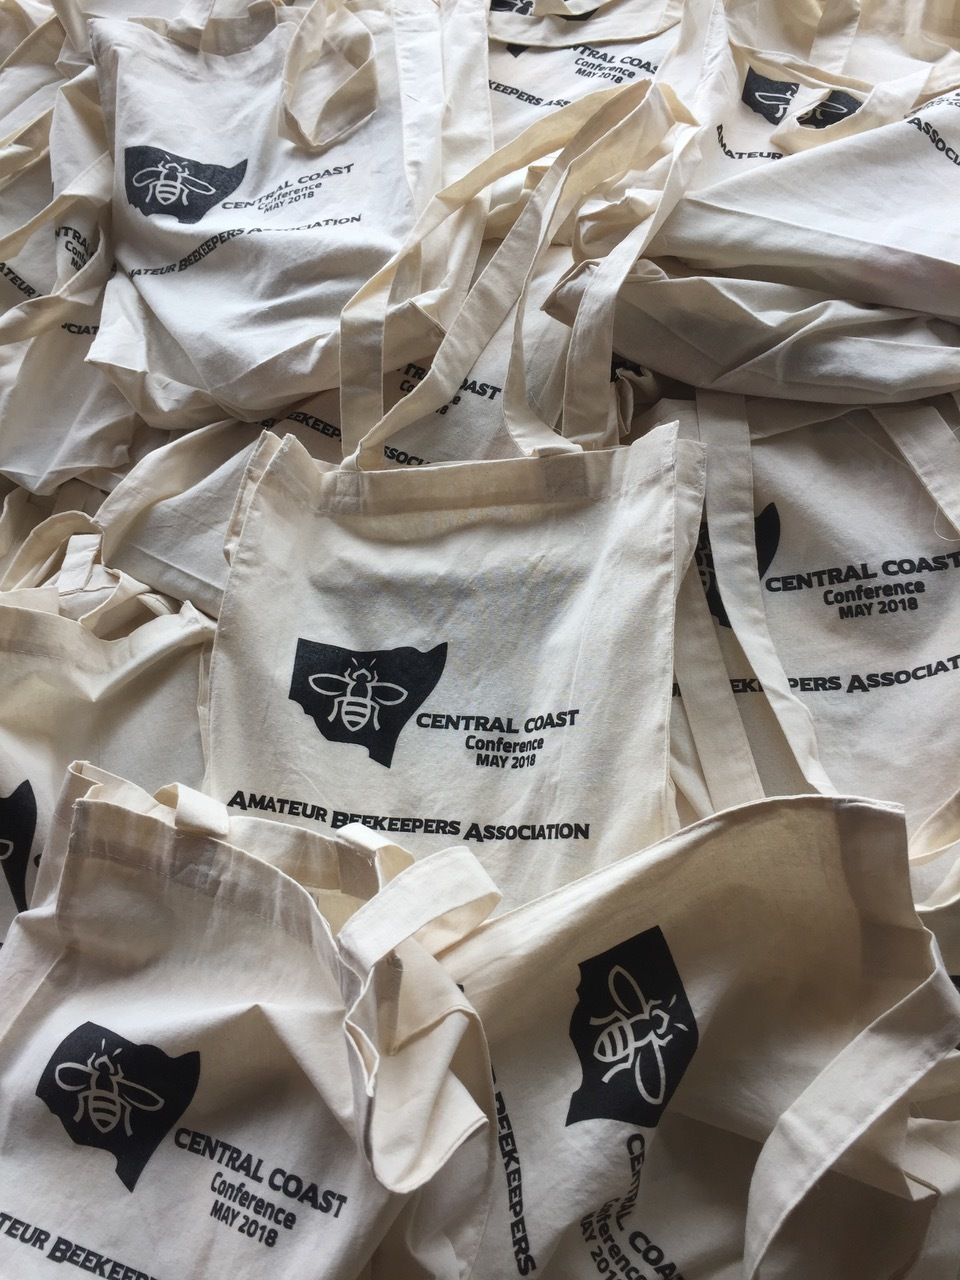 Does one of these bags have your name on it?